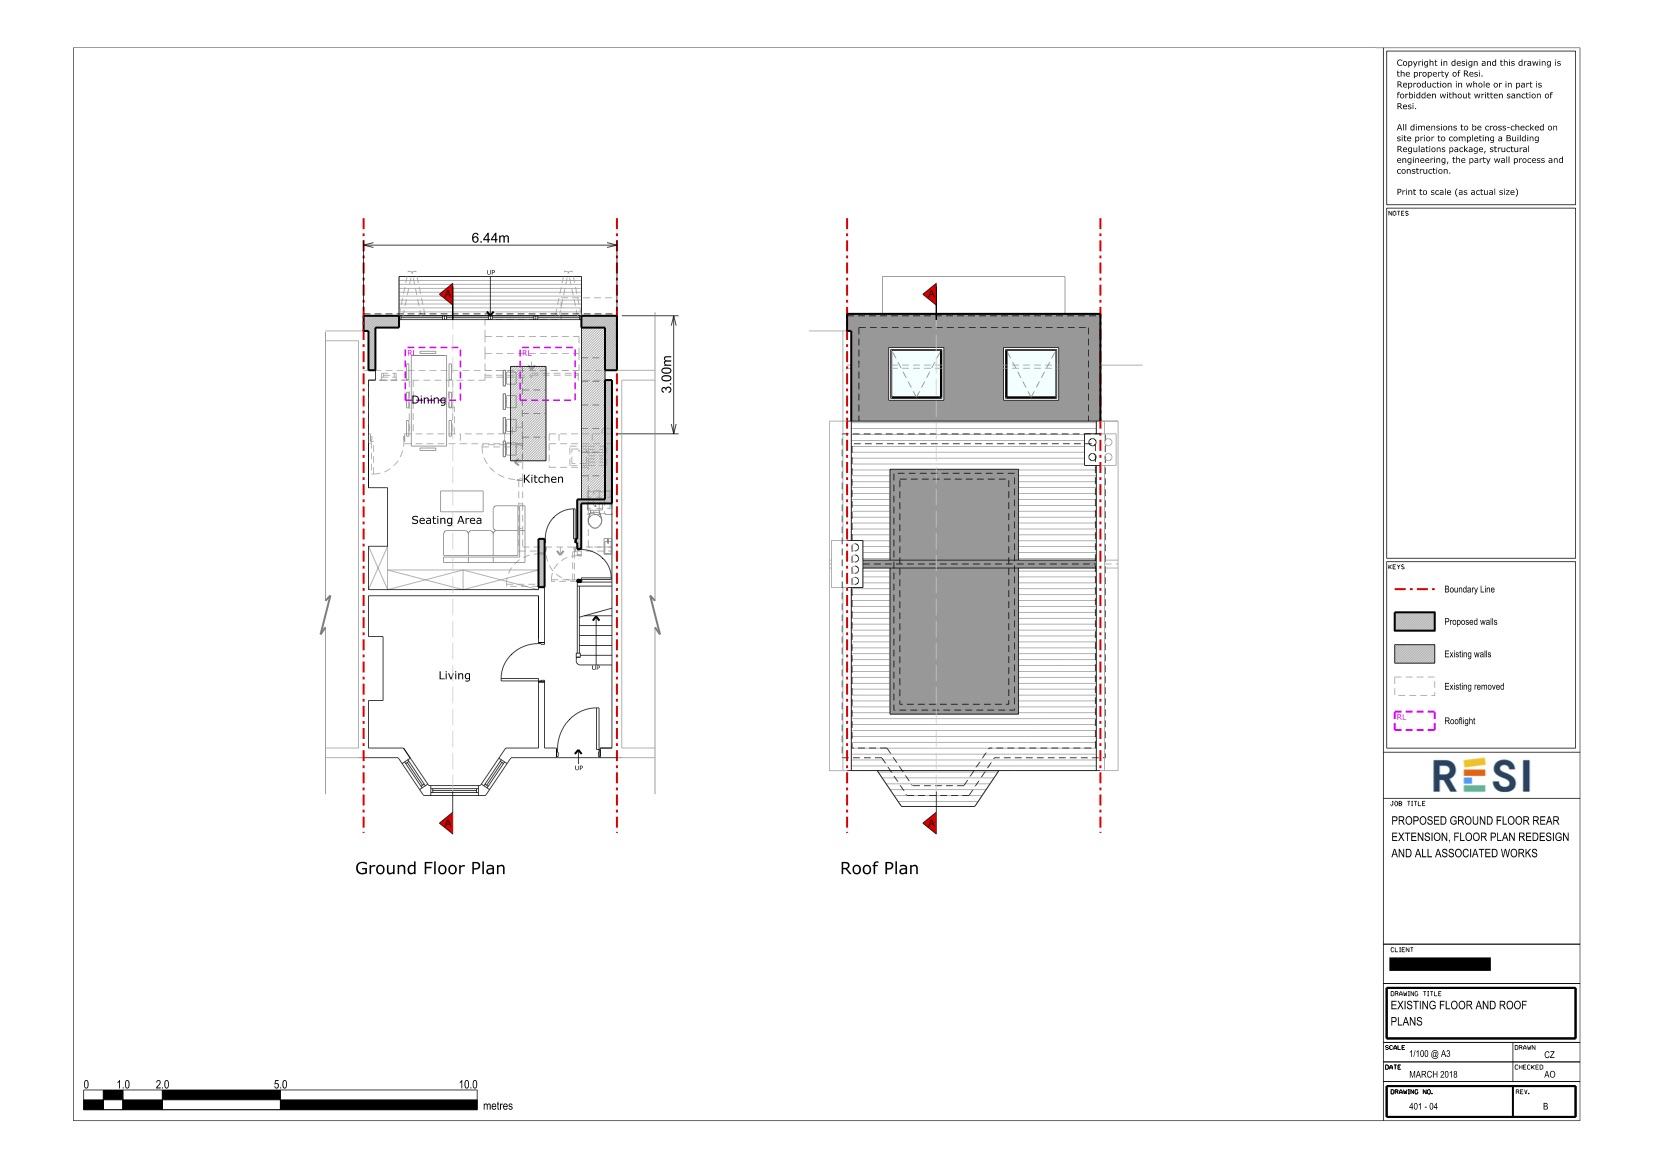 Architectural drawings rev b 3   ground floor and roof plans